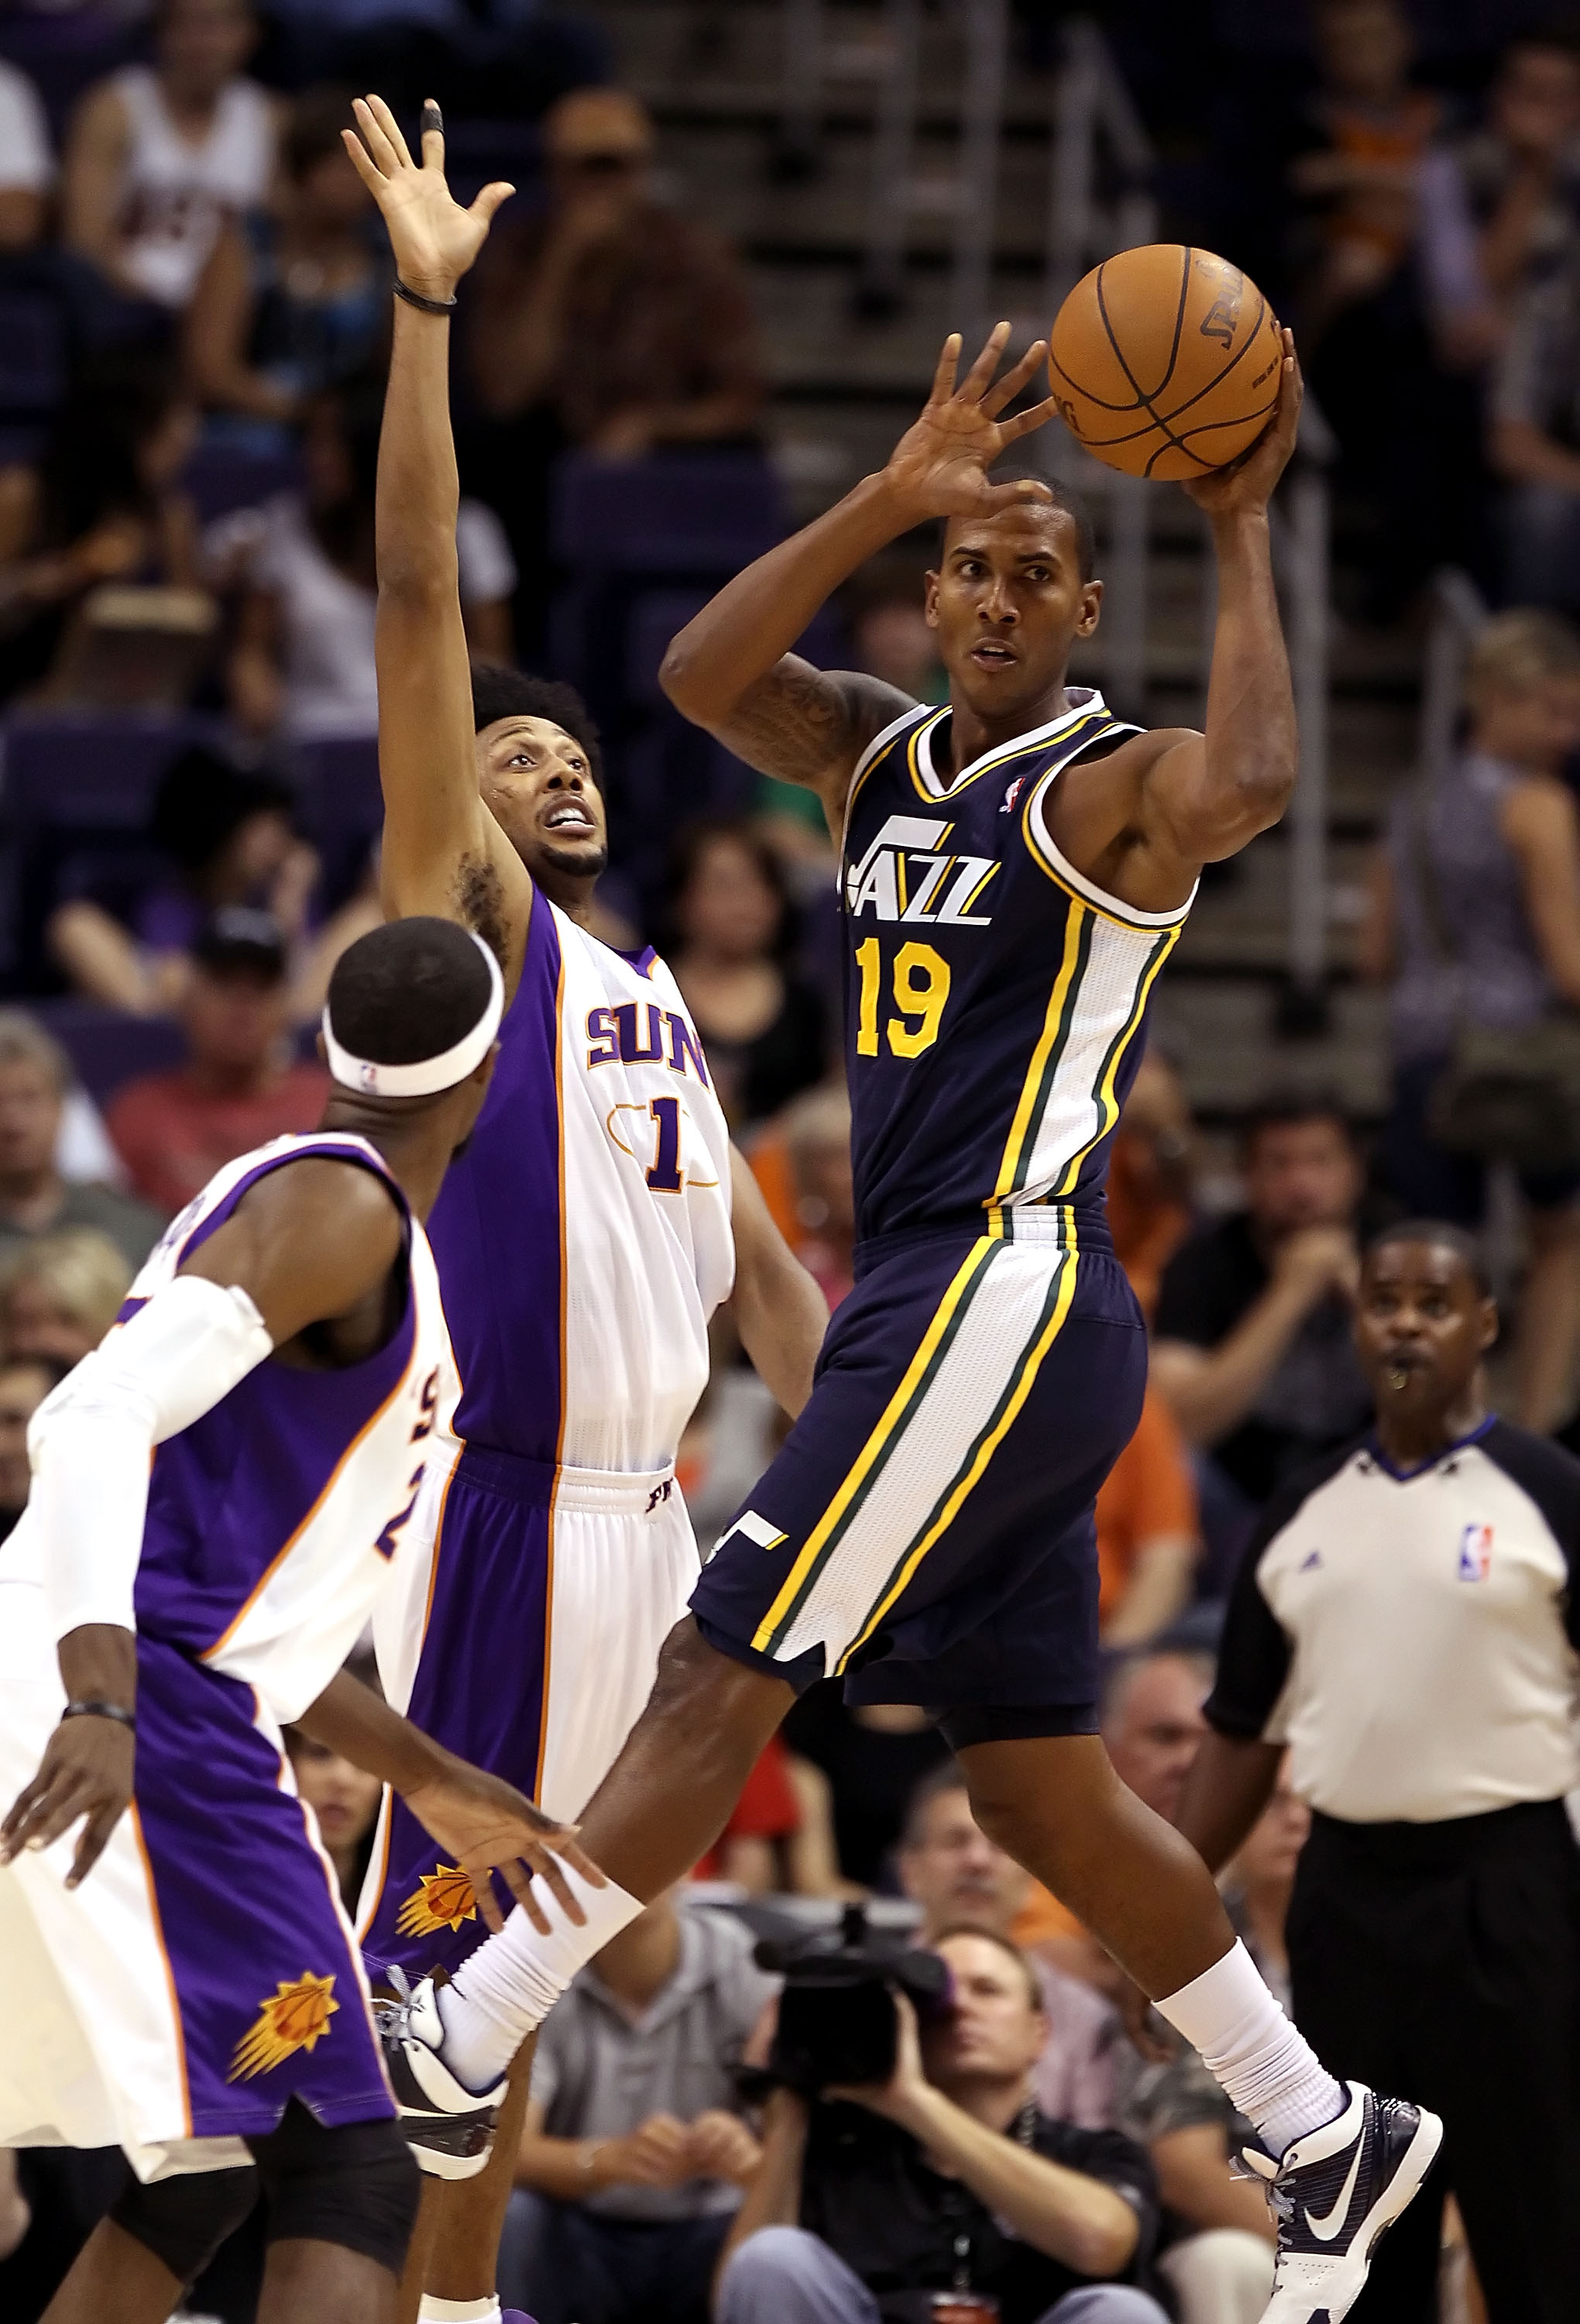 PHOENIX - OCTOBER 12:  Raja Bell #19 of the Utah Jazz passes the ball under pressure from Josh Childress #1 of the Phoenix Suns during the preseason NBA game at US Airways Center on October 12, 2010 in Phoenix, Arizona. NOTE TO USER: User expressly acknow